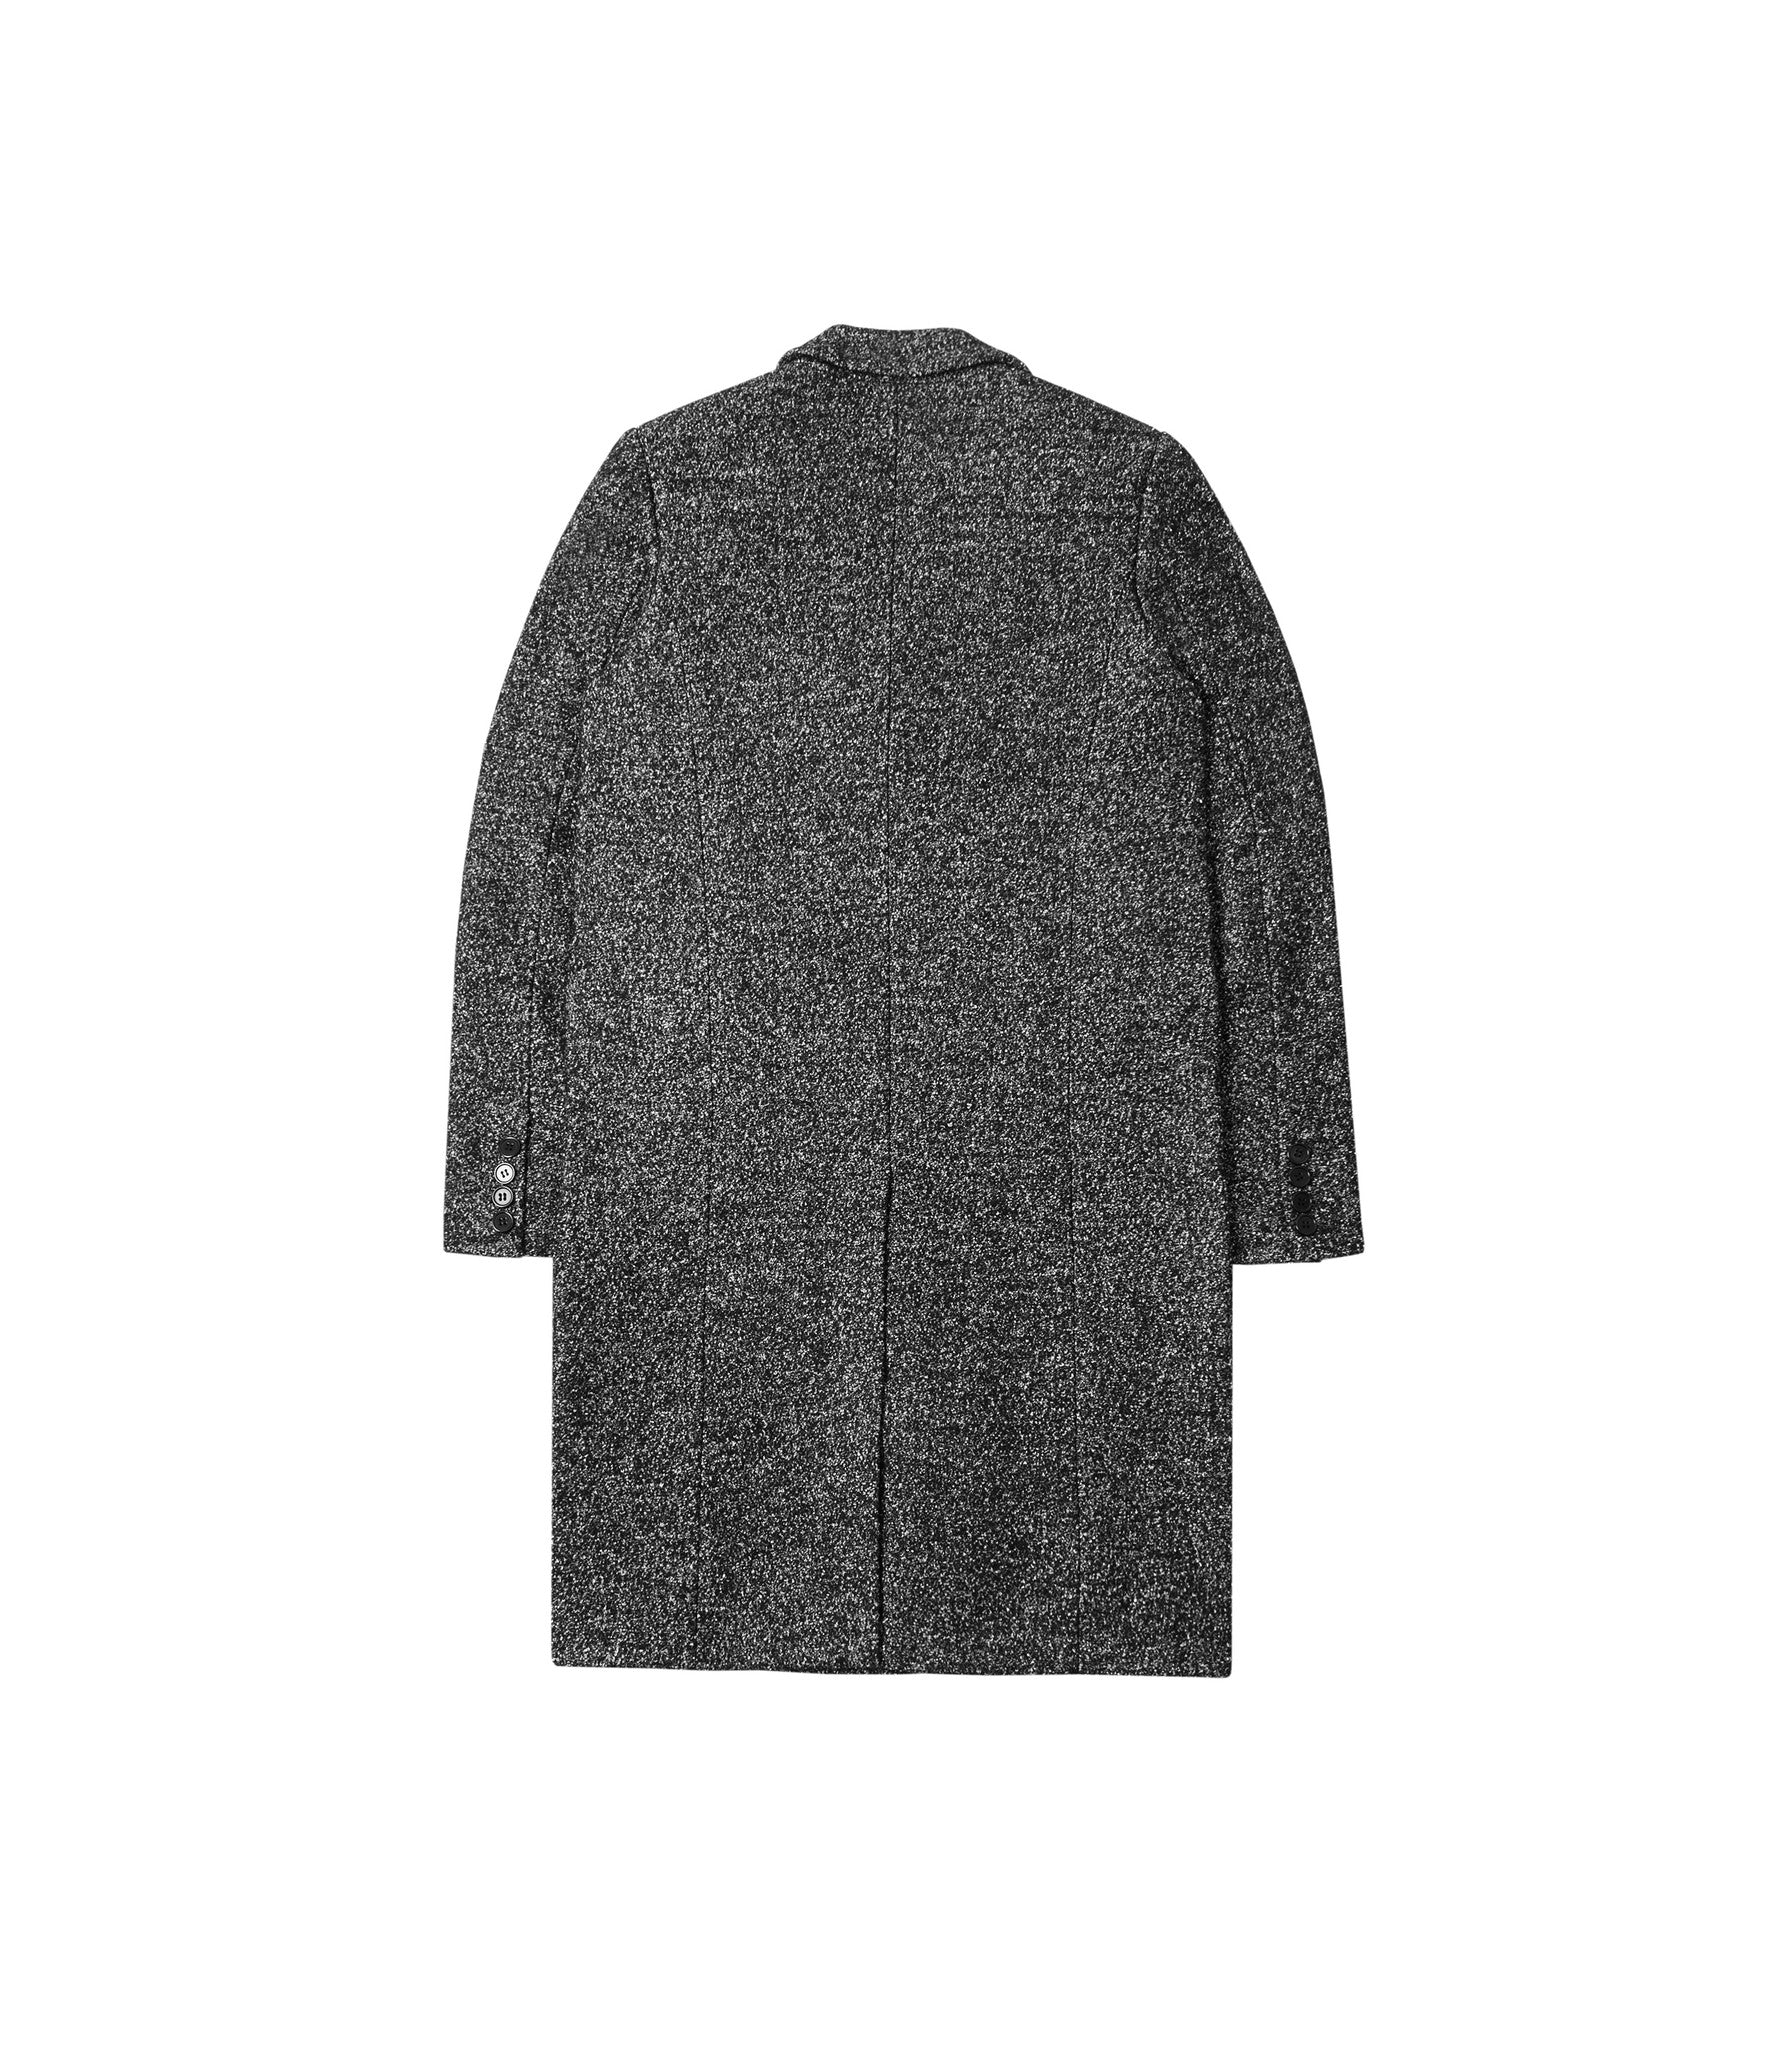 JK212 Mélange Wool Blend Overcoat - Black - underated london - underatedco - 3